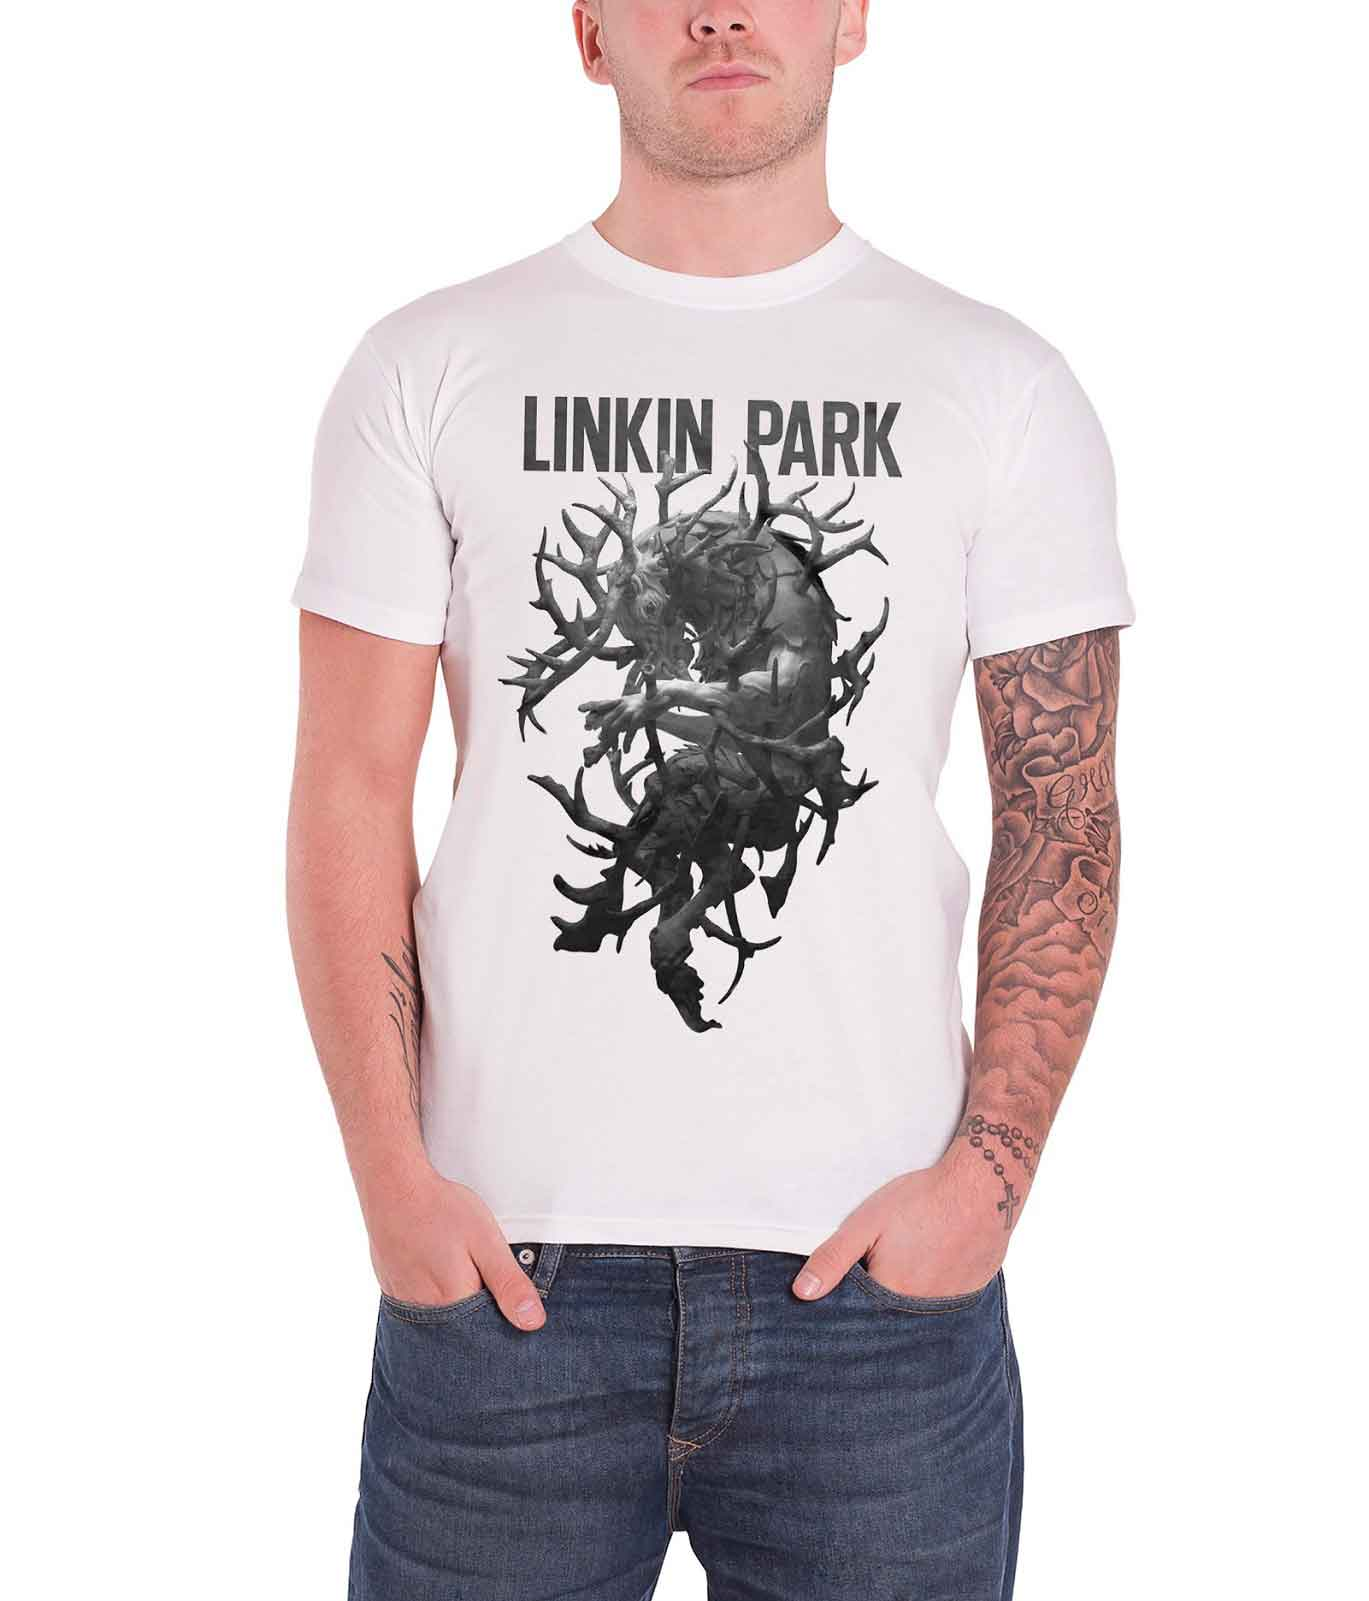 d87c1918 Linkin Park Hunting Party Antlers Official Mens White T Shirt Medium. About  this product. Picture 1 of 3; Picture 2 of 3 ...